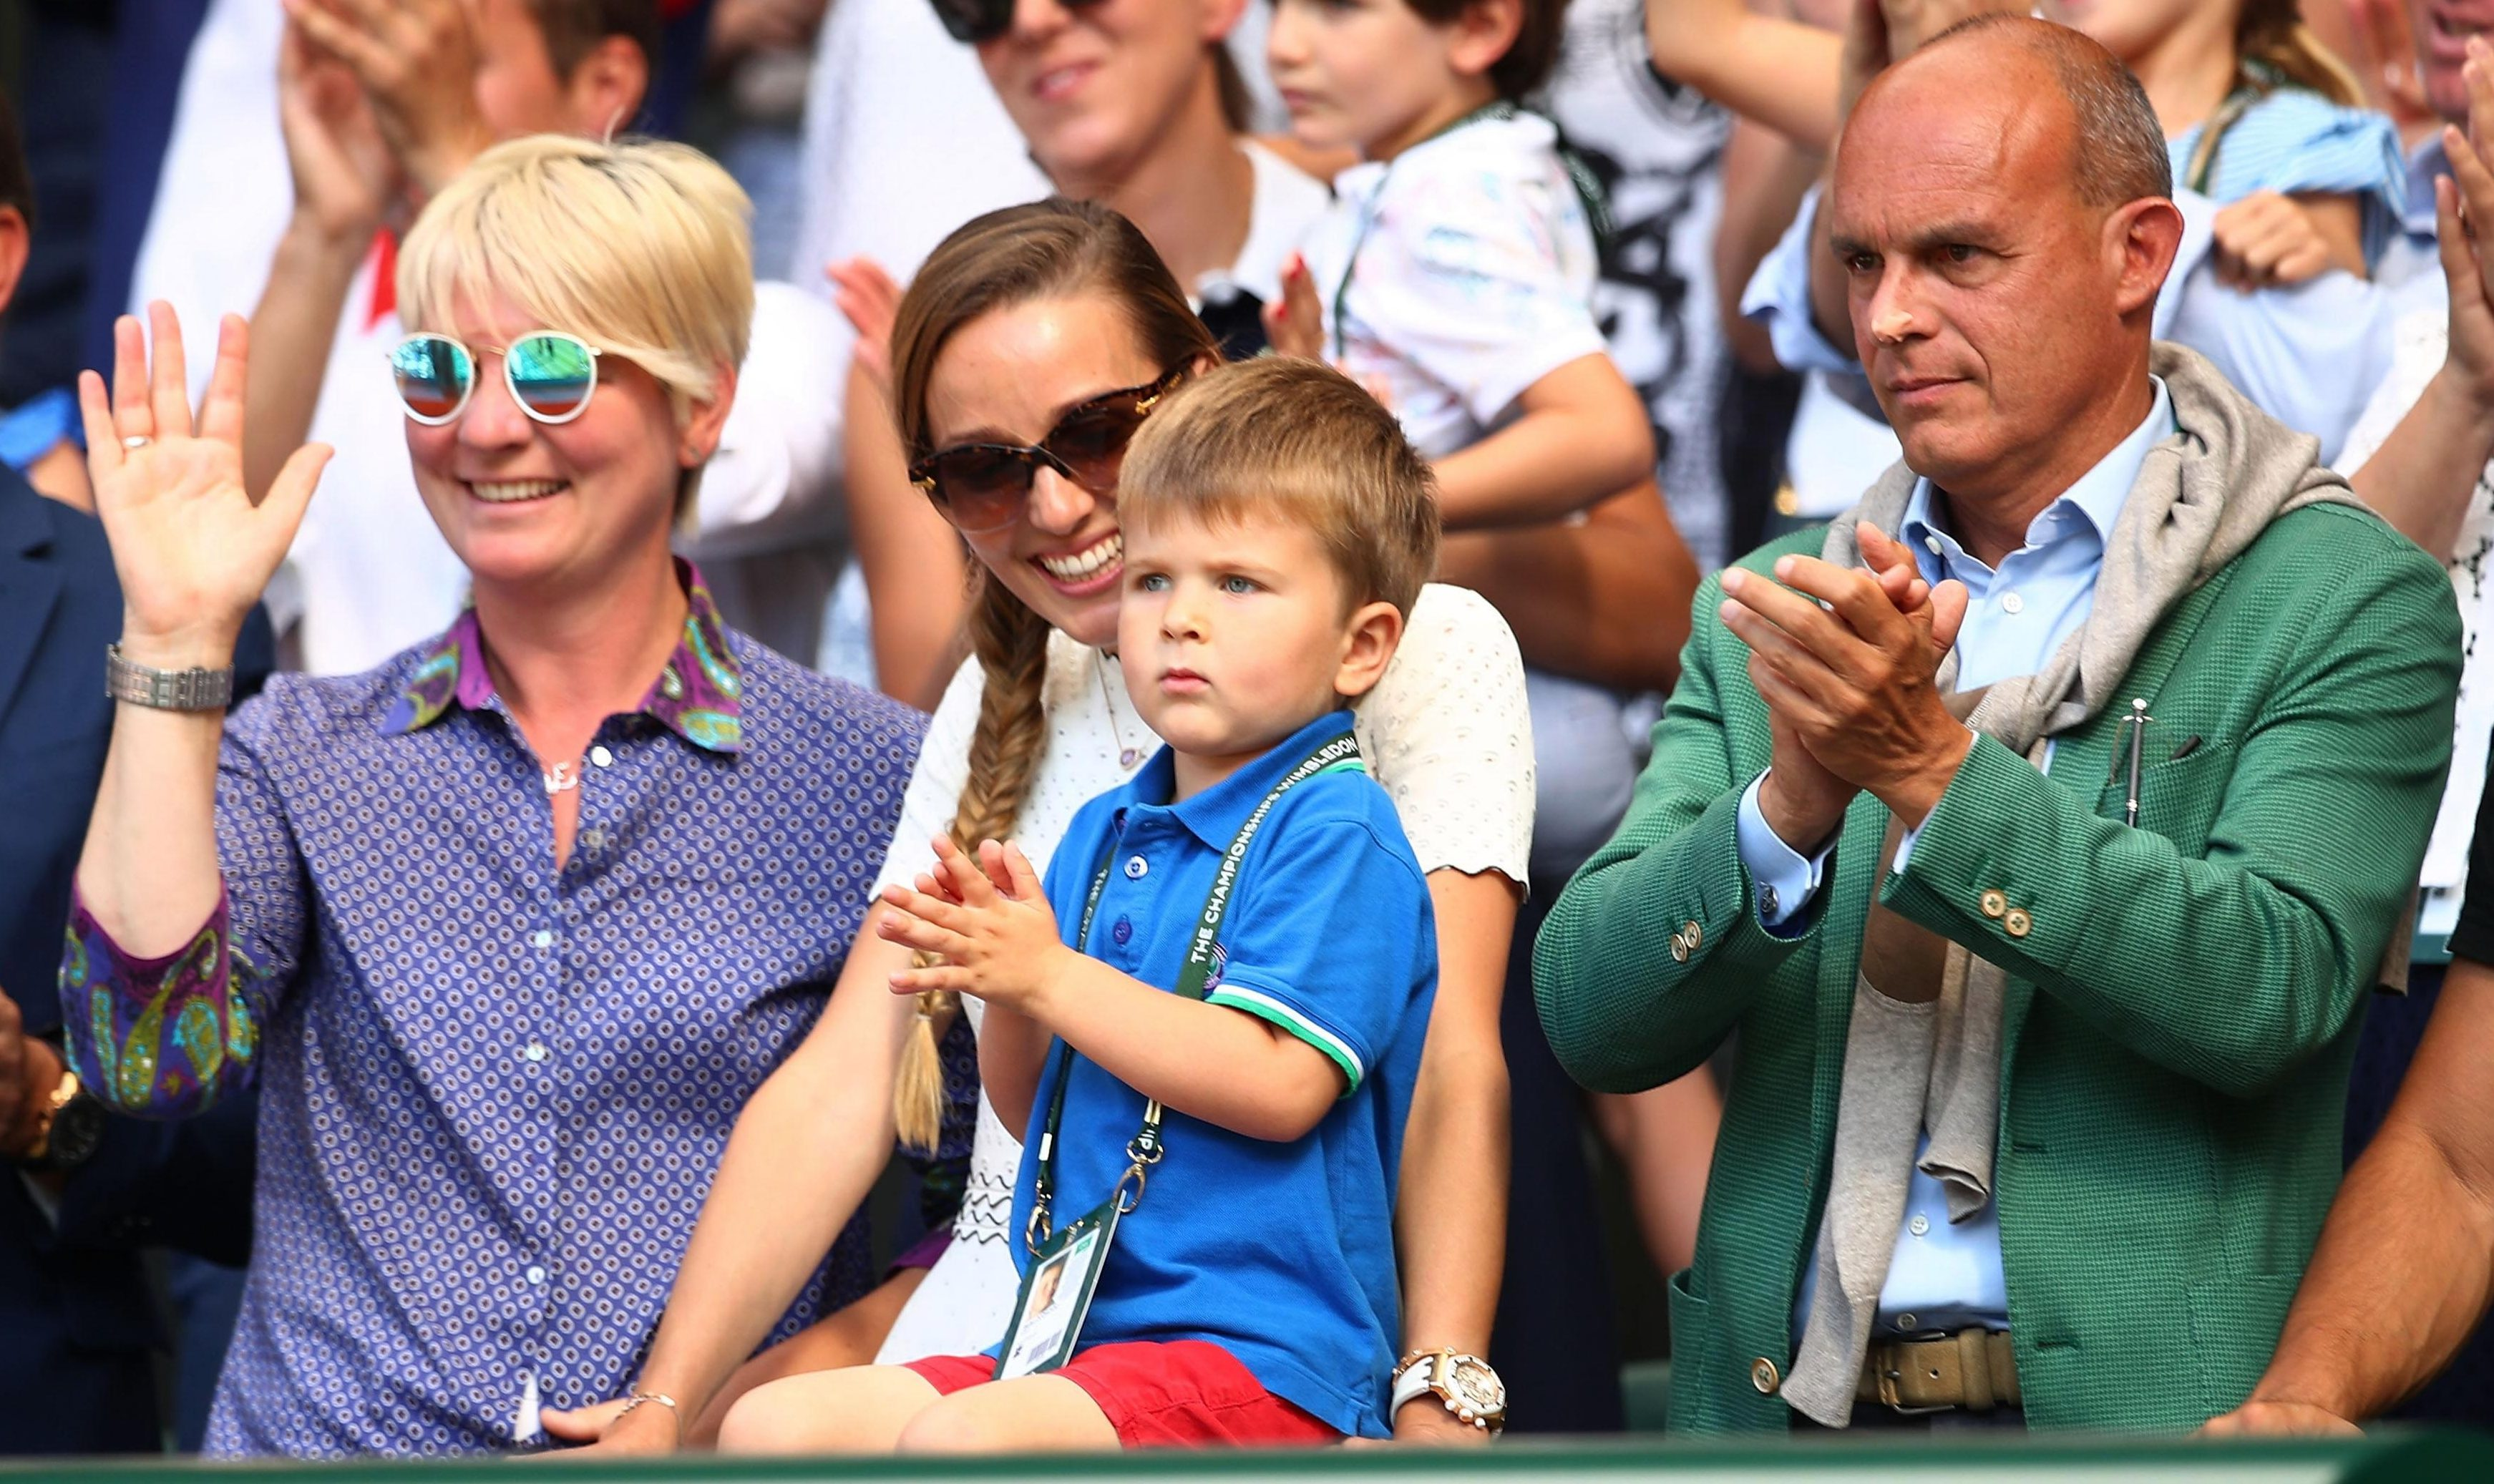 The Djokovic family including his young son cheered him on